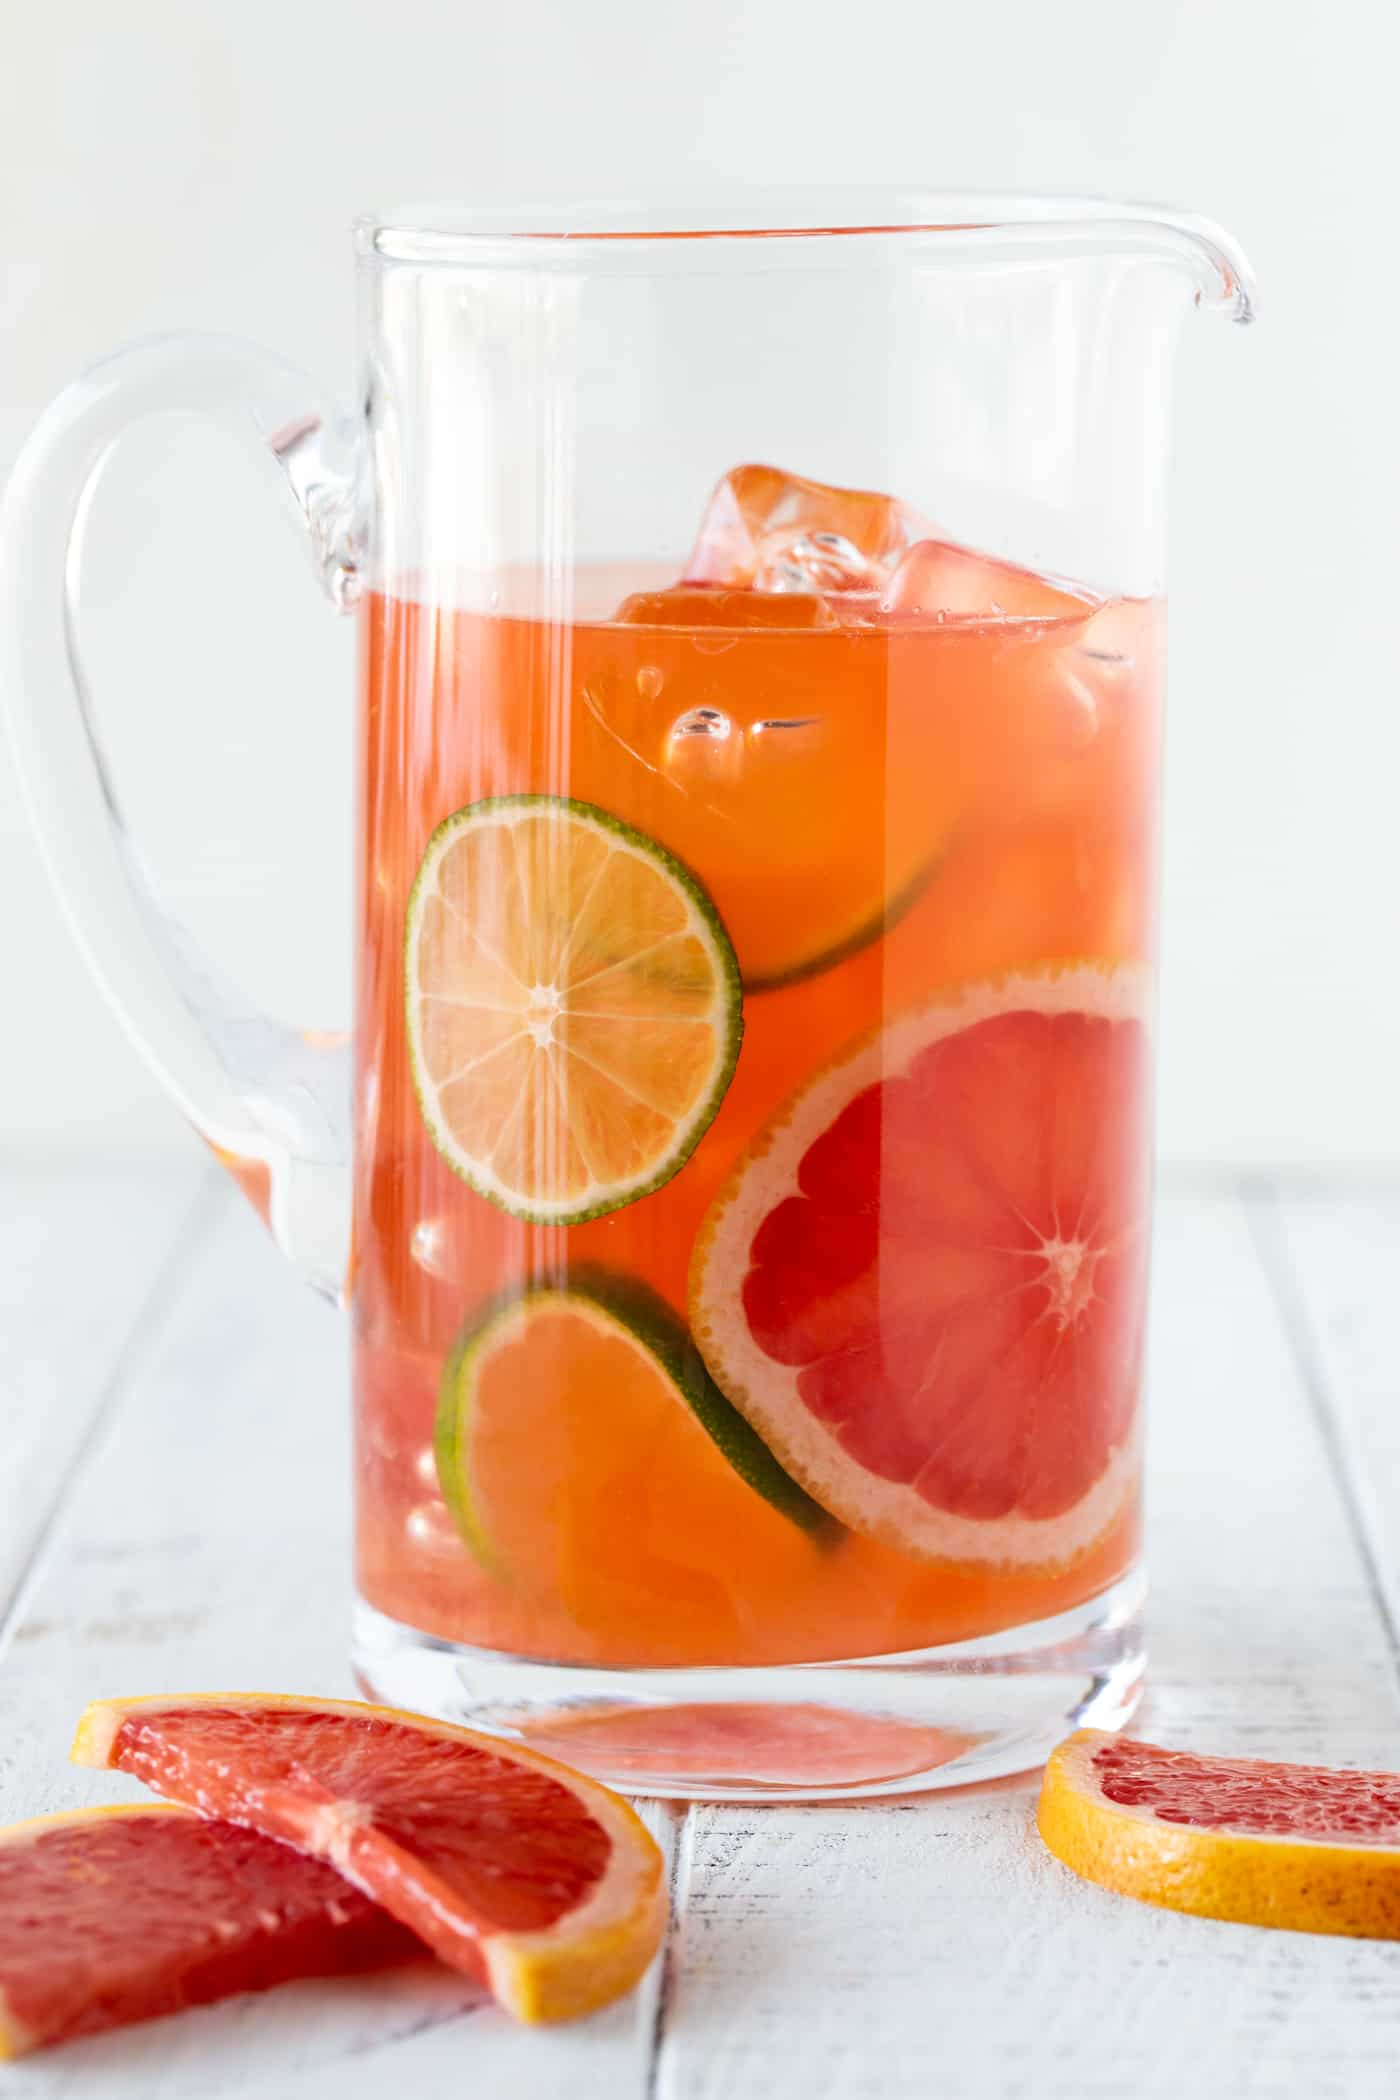 Glass pitcher filled with Grapefruit Aperol Cocktails garnished with fresh grapefruit and limes slices.